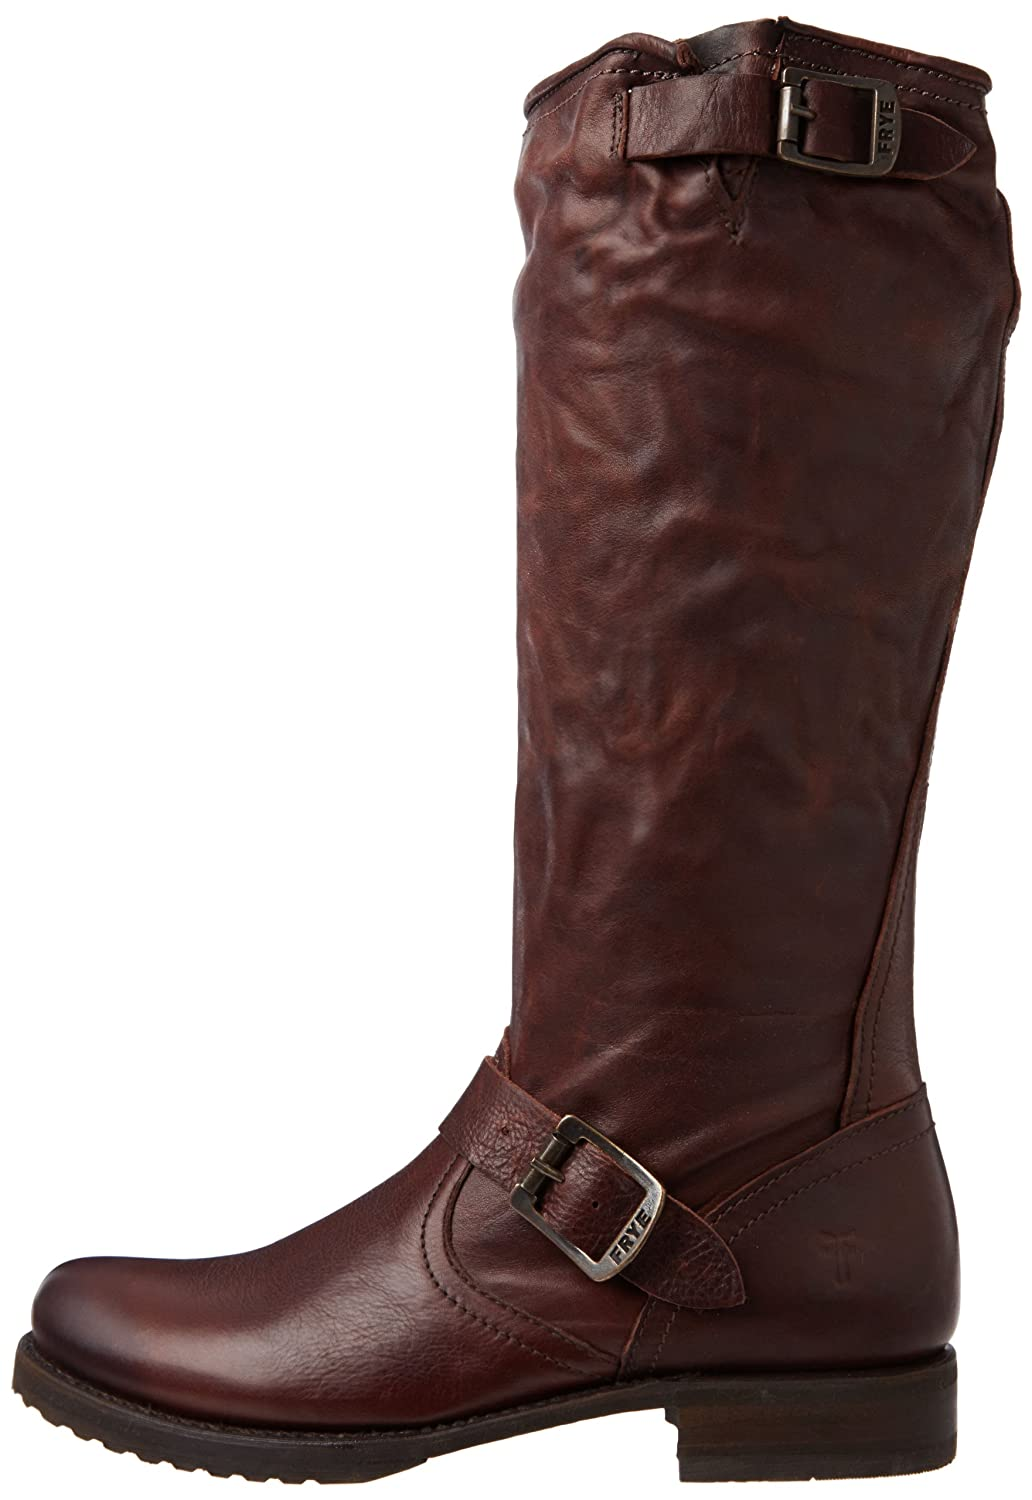 FRYE Women's Veronica Slouch Boot B008BULPGY 11 B(M) US|Dark Brown Soft Vintage Leather-76602